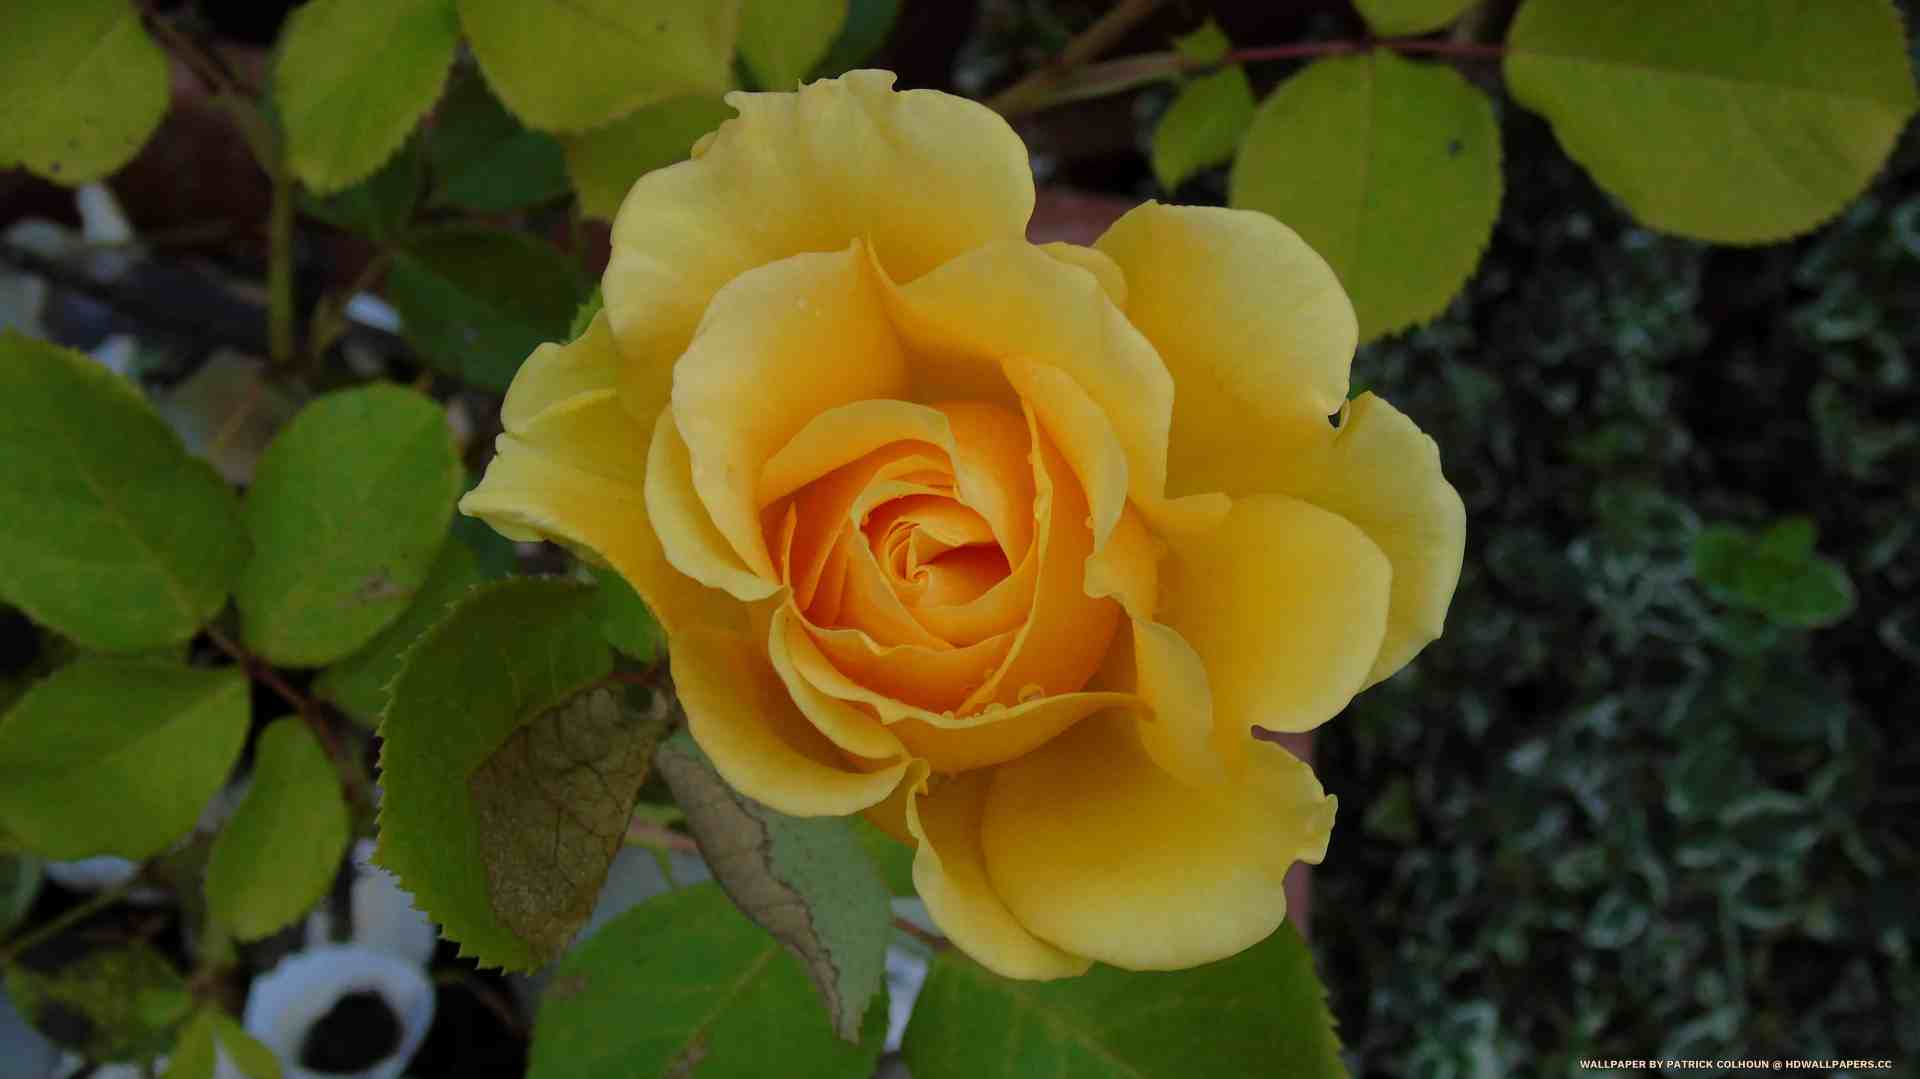 the yellow rose - HD Wallpapers